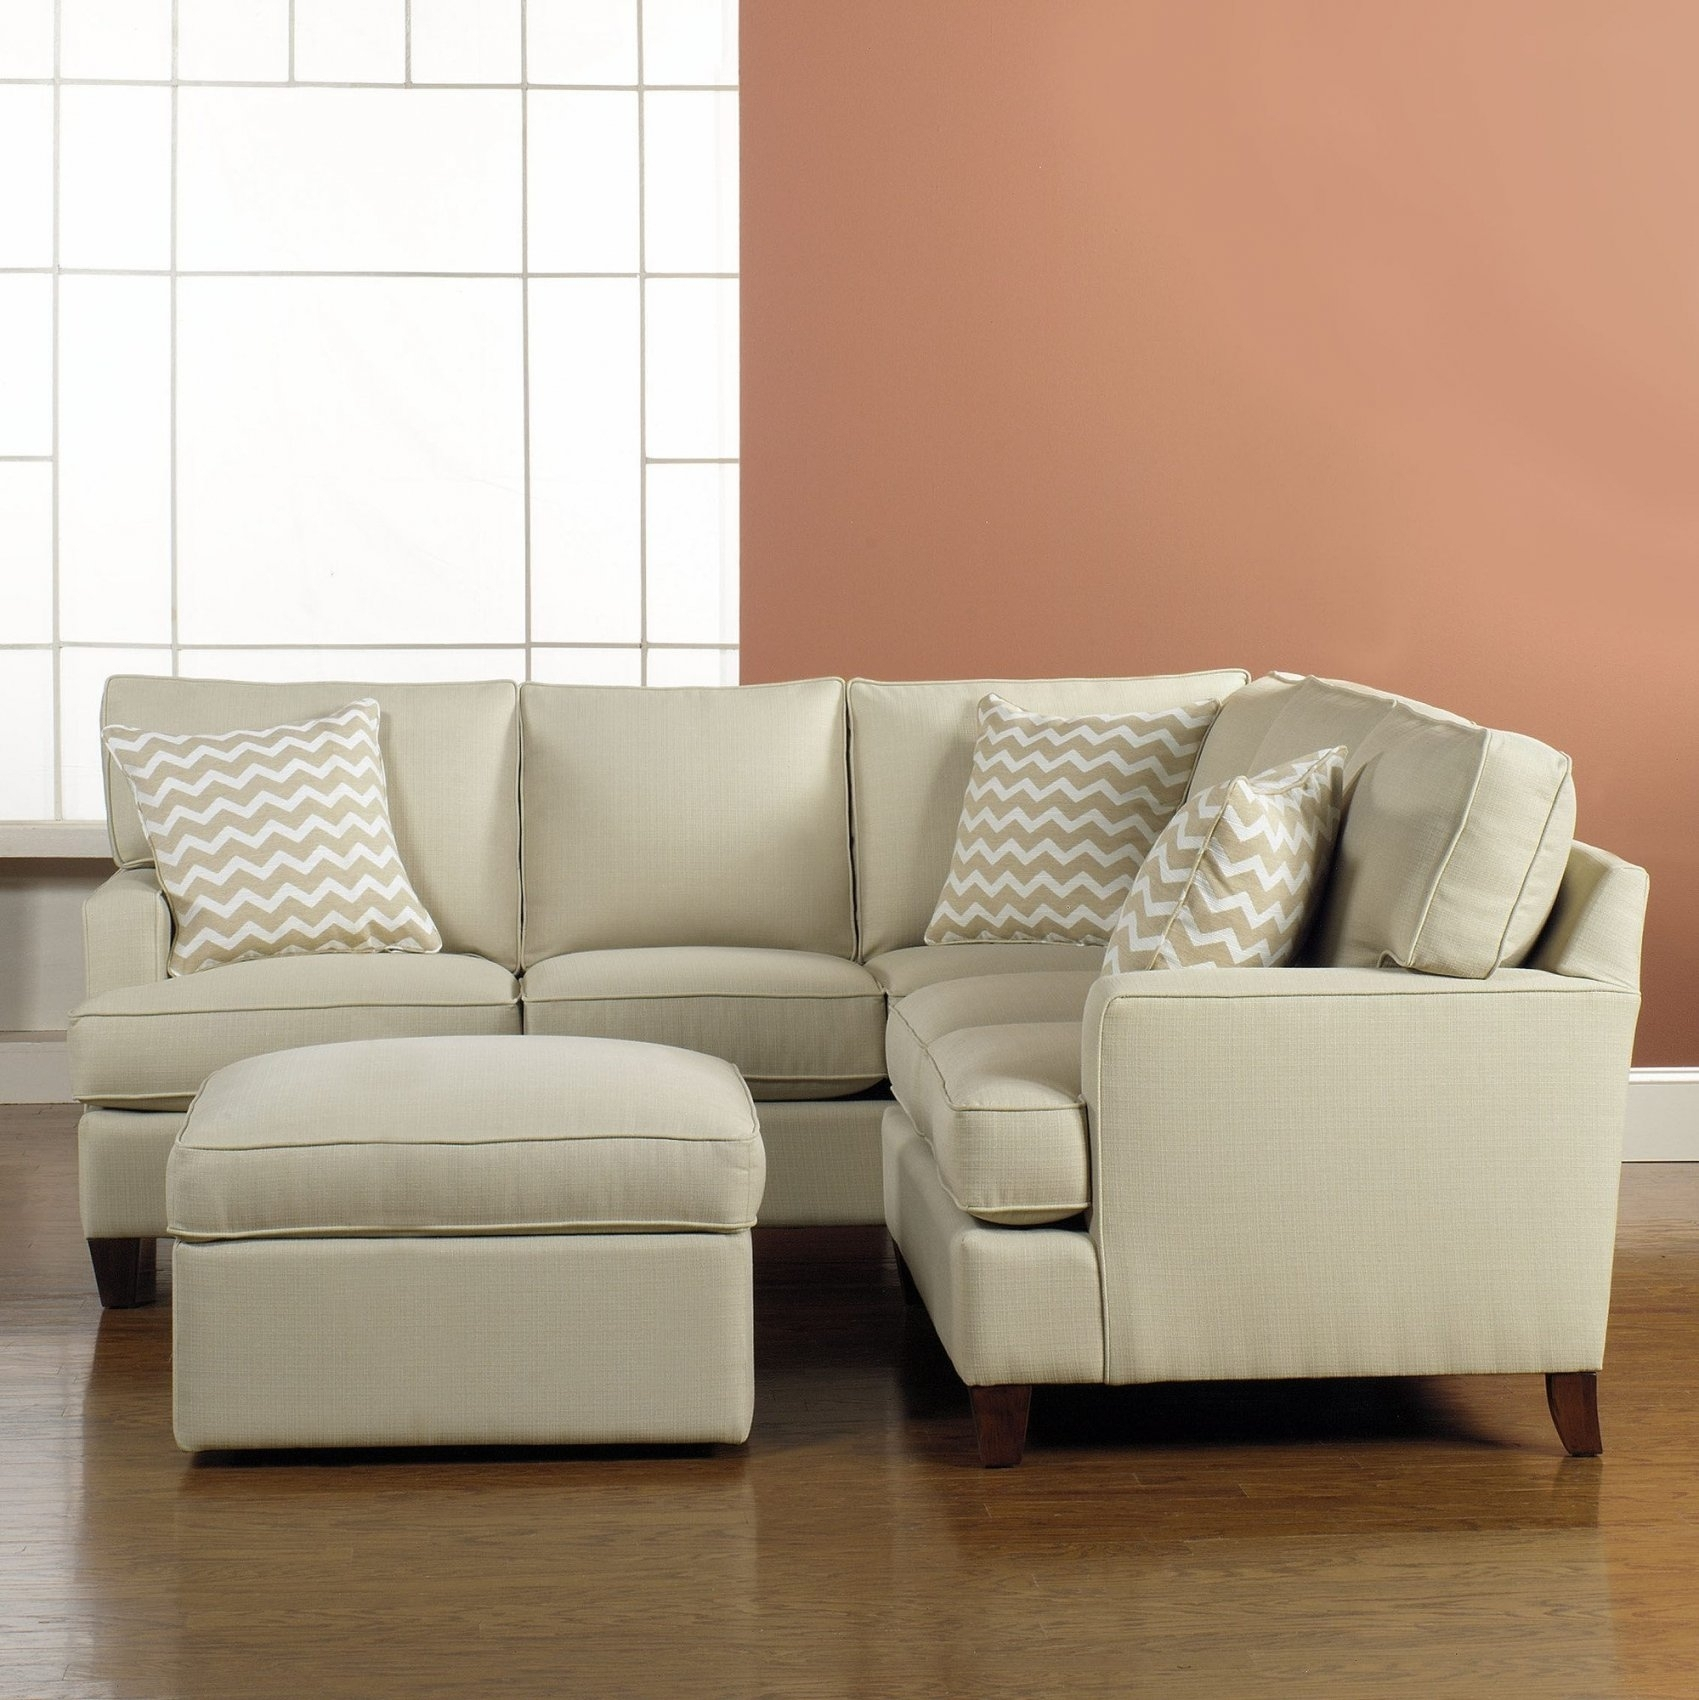 Sectional Sofa For Small Spaces 94 In Living Room Sofa With throughout Small Spaces Sectional Sofas (Image 8 of 10)